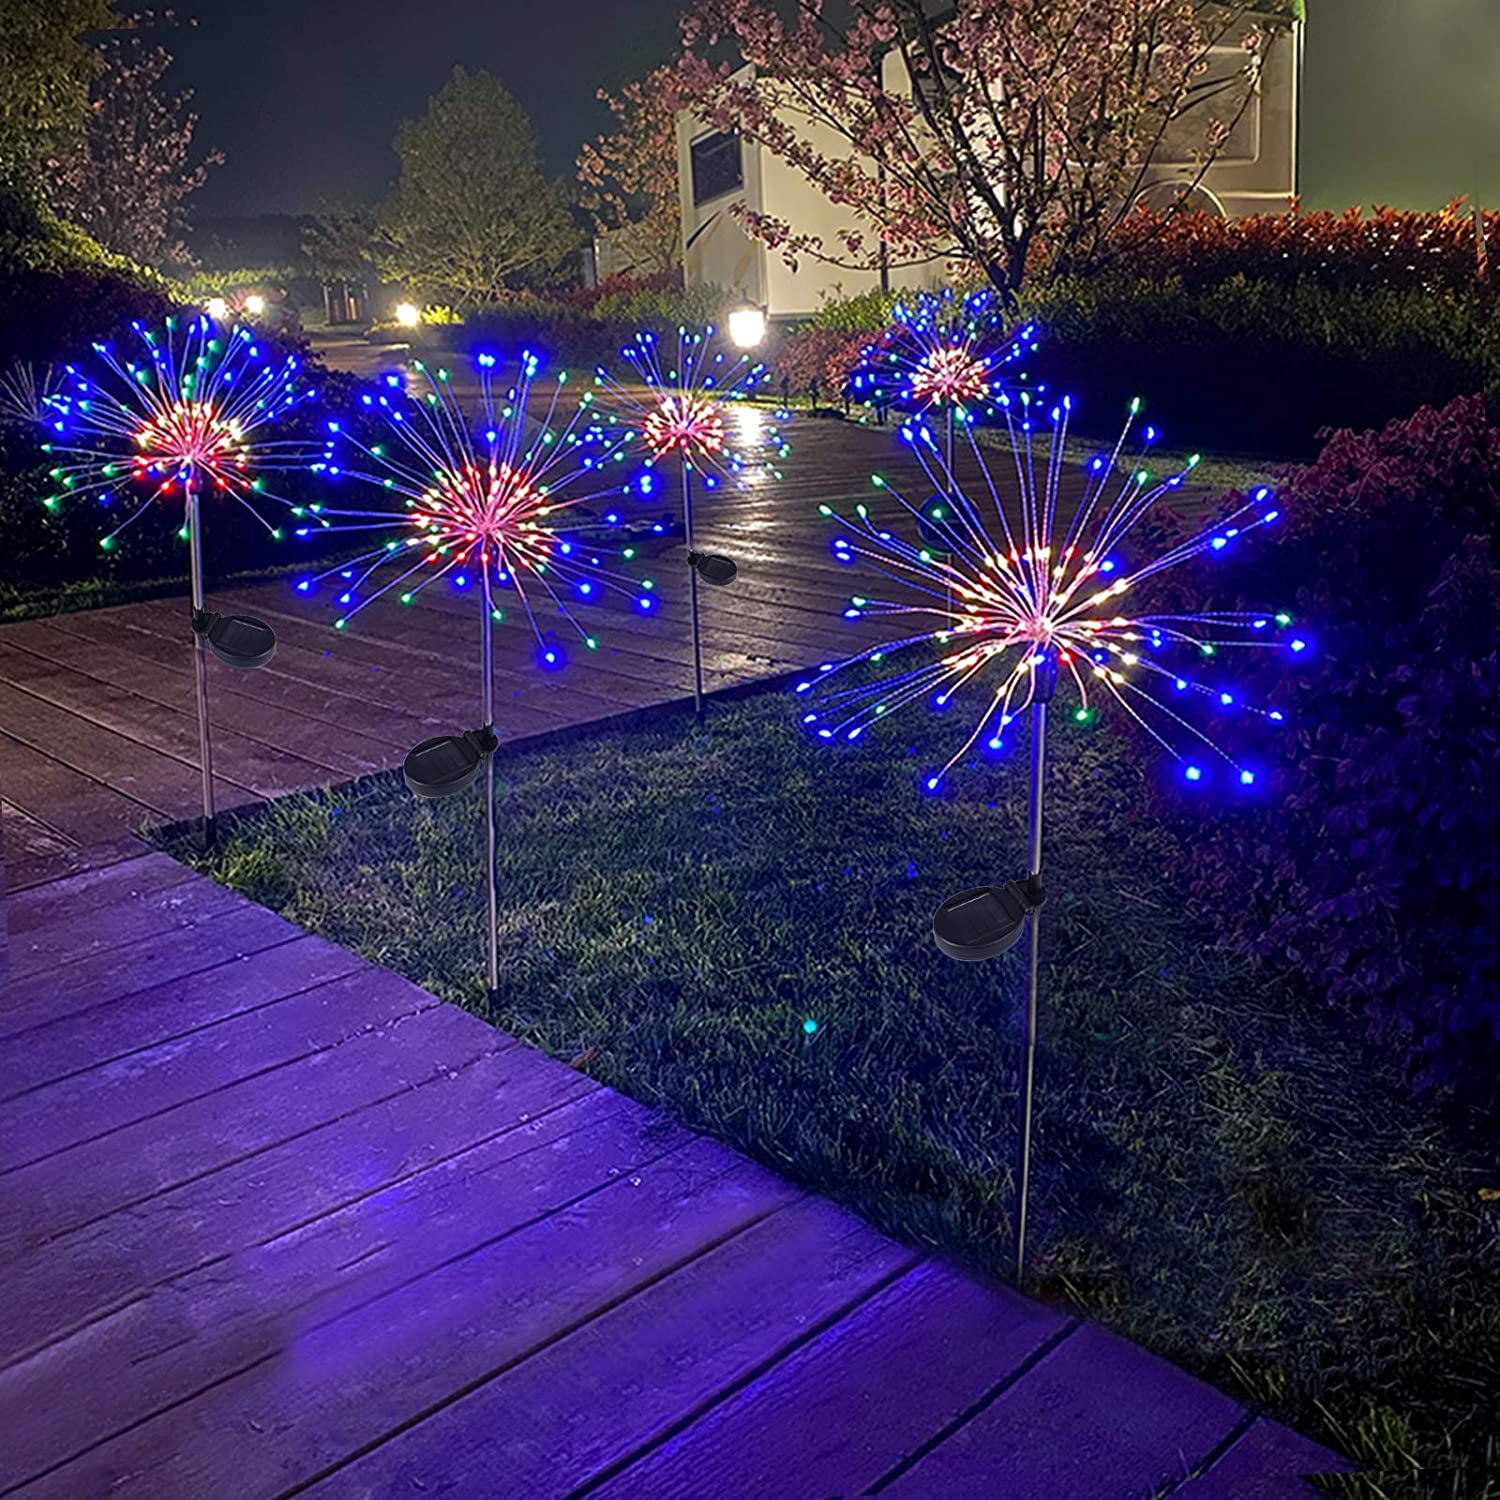 2 Pack Outdoor Home Decor Solar Powered Flowers Firework Lights, Waterproof DIY 40 Copper Wire Dimmable Auto ON-Off 120 LED Lights for Garden Patio Yard Pathway Lawn Party (Multi)